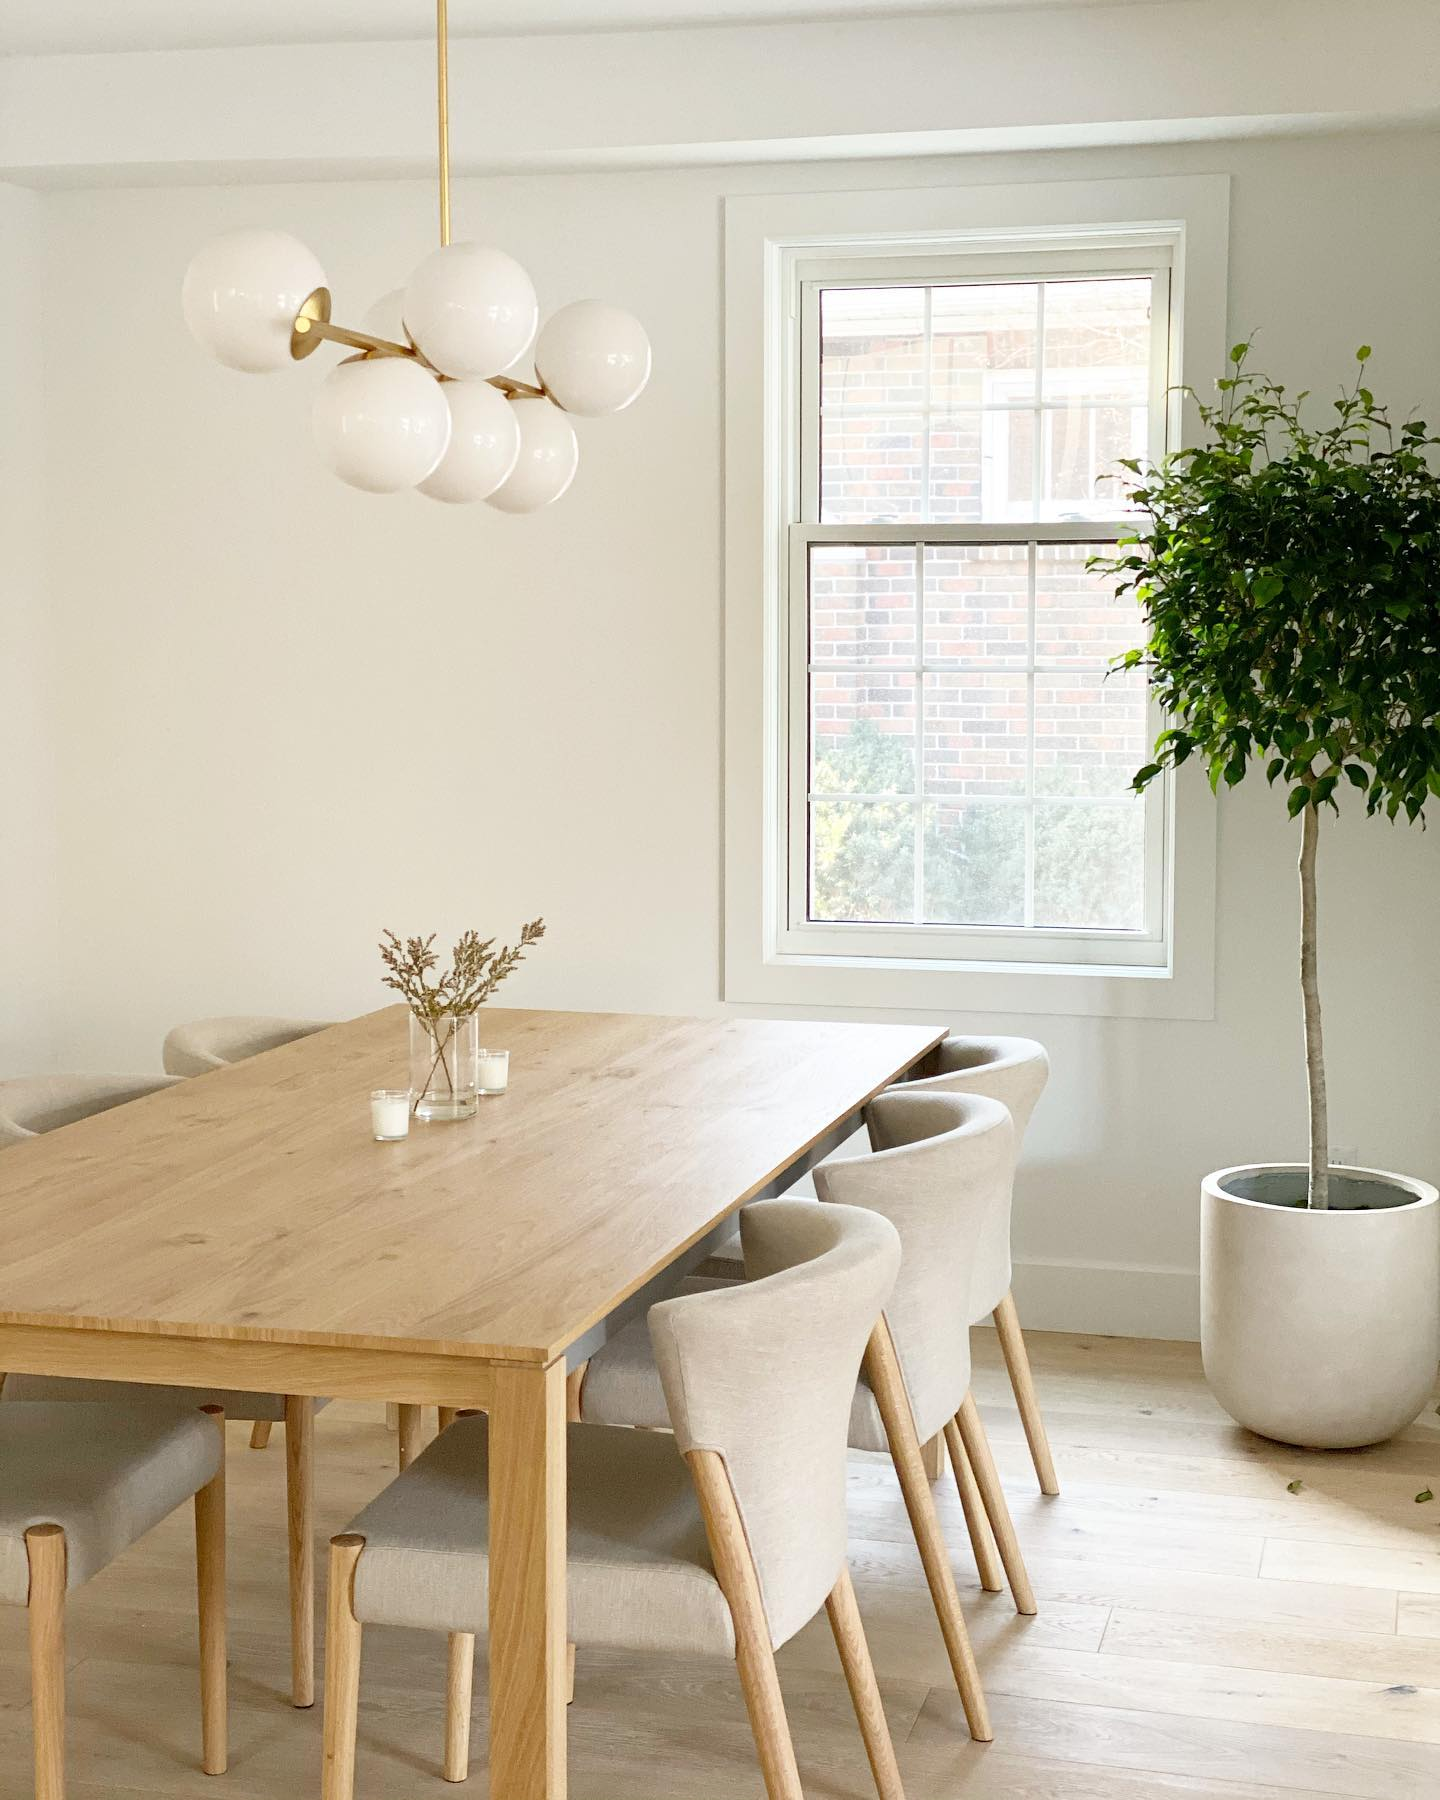 How To Pick the Perfect Dining Chair - Tuck Studio